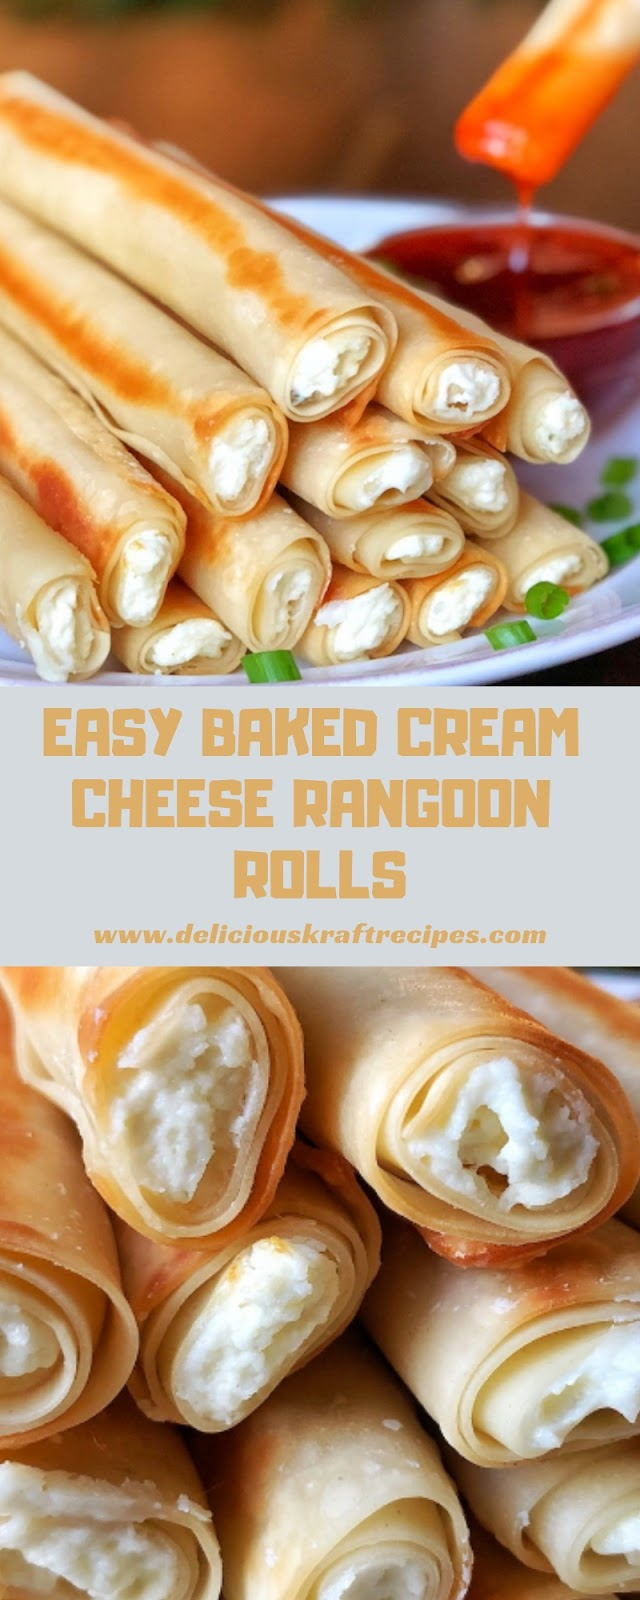 EASY BAKED CREAM CHEESE RANGOON ROLLS